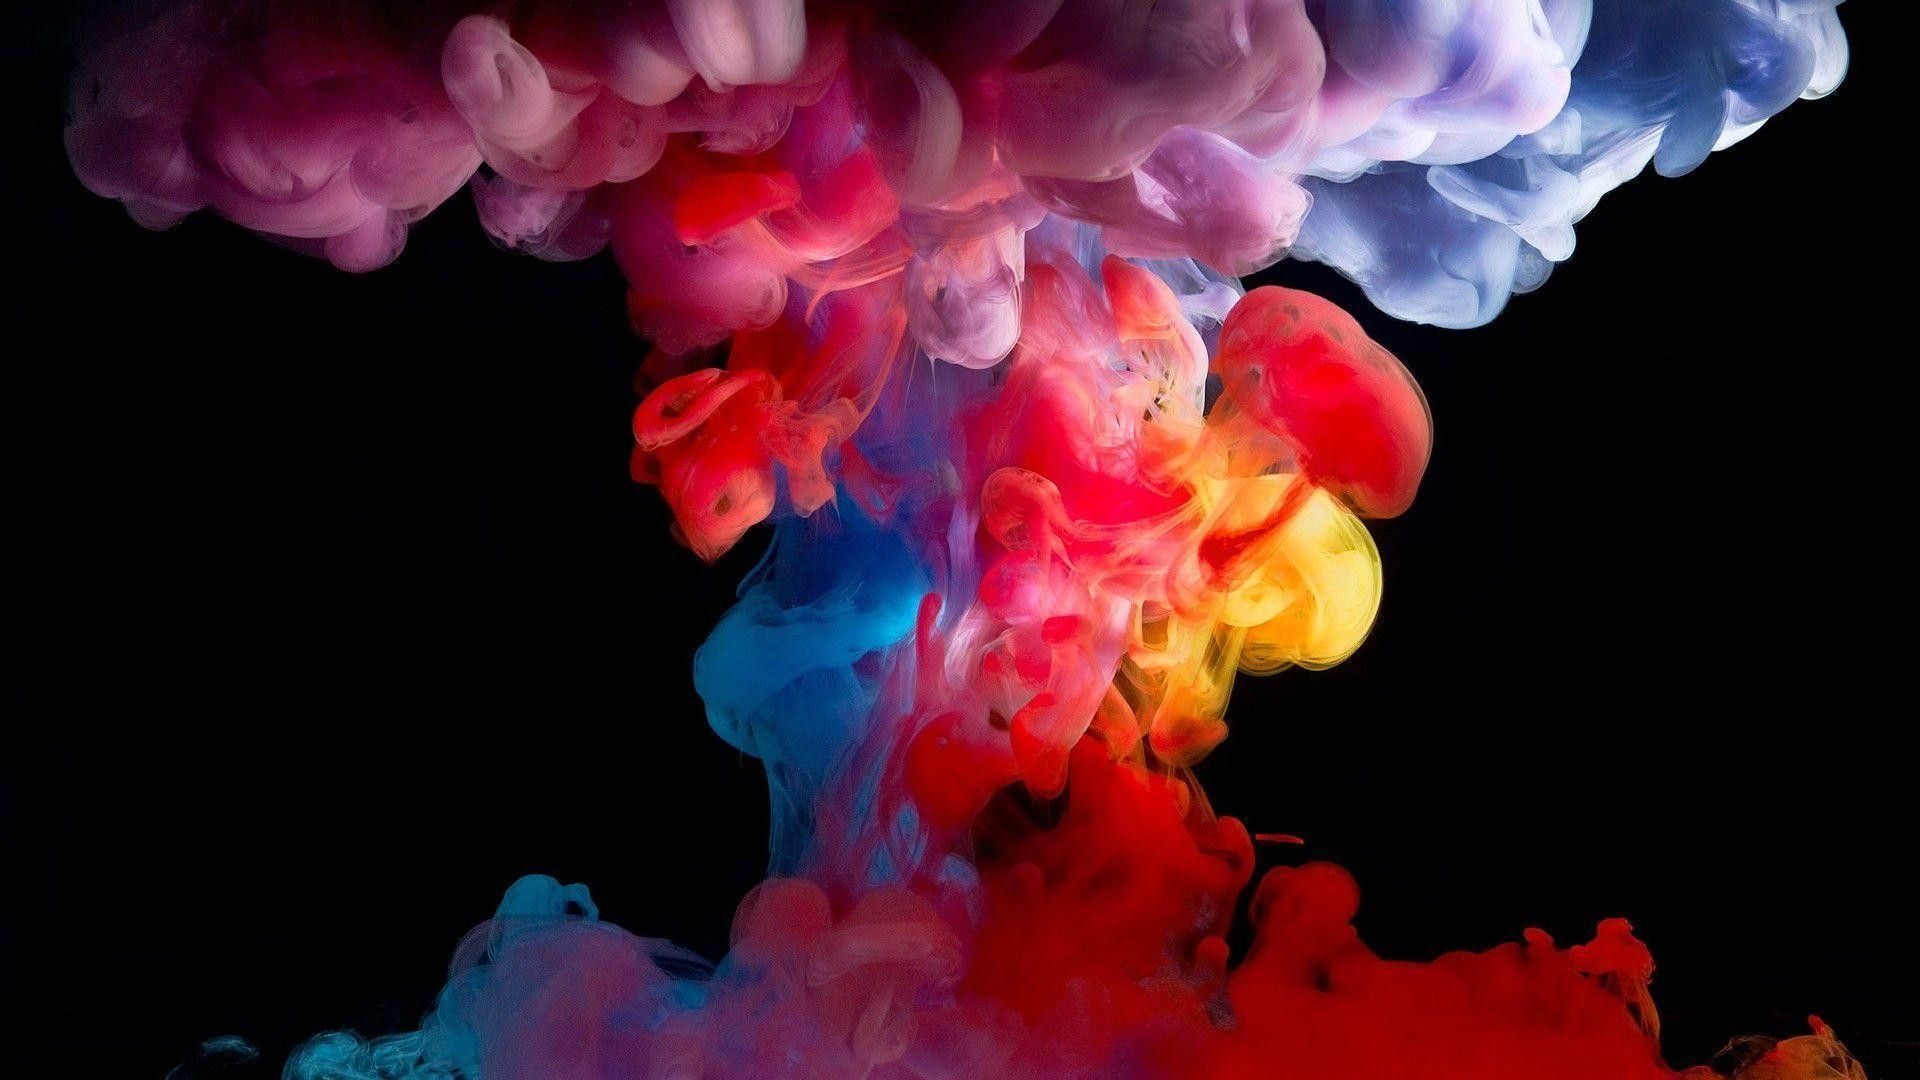 Color Smoke 4k Wallpapers Top Free Color Smoke 4k Backgrounds Wallpaperaccess